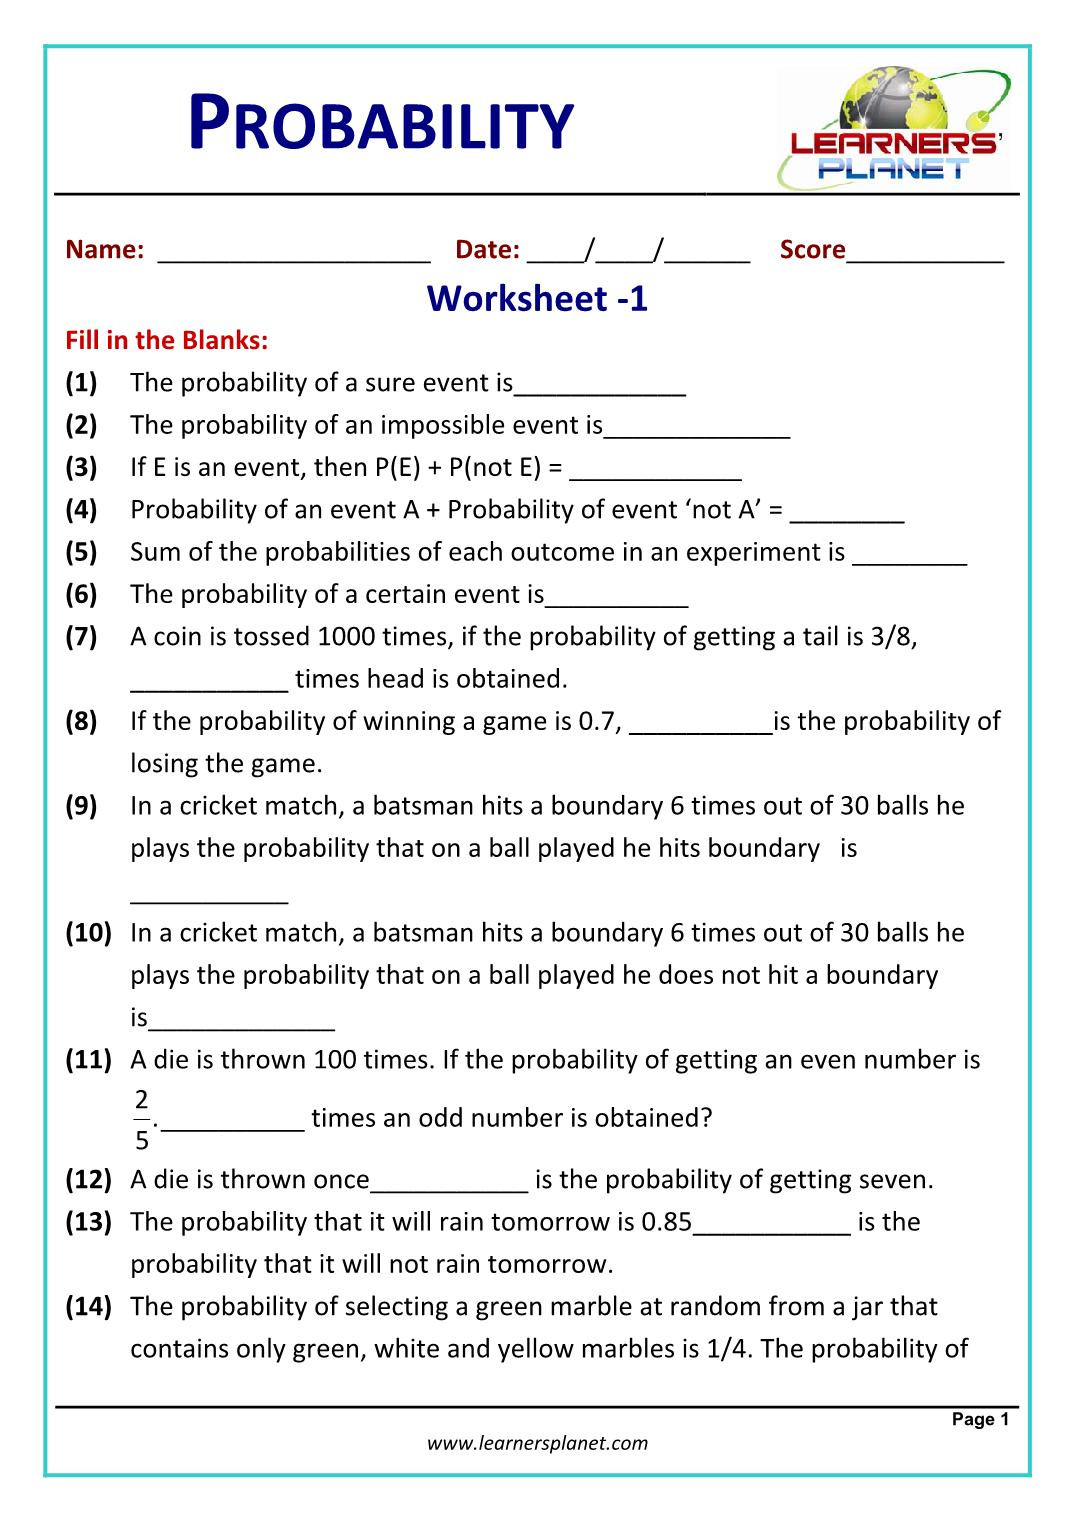 Probability Worksheets High School Pdf Division Games for 2nd Grade Physics Measurements and Units